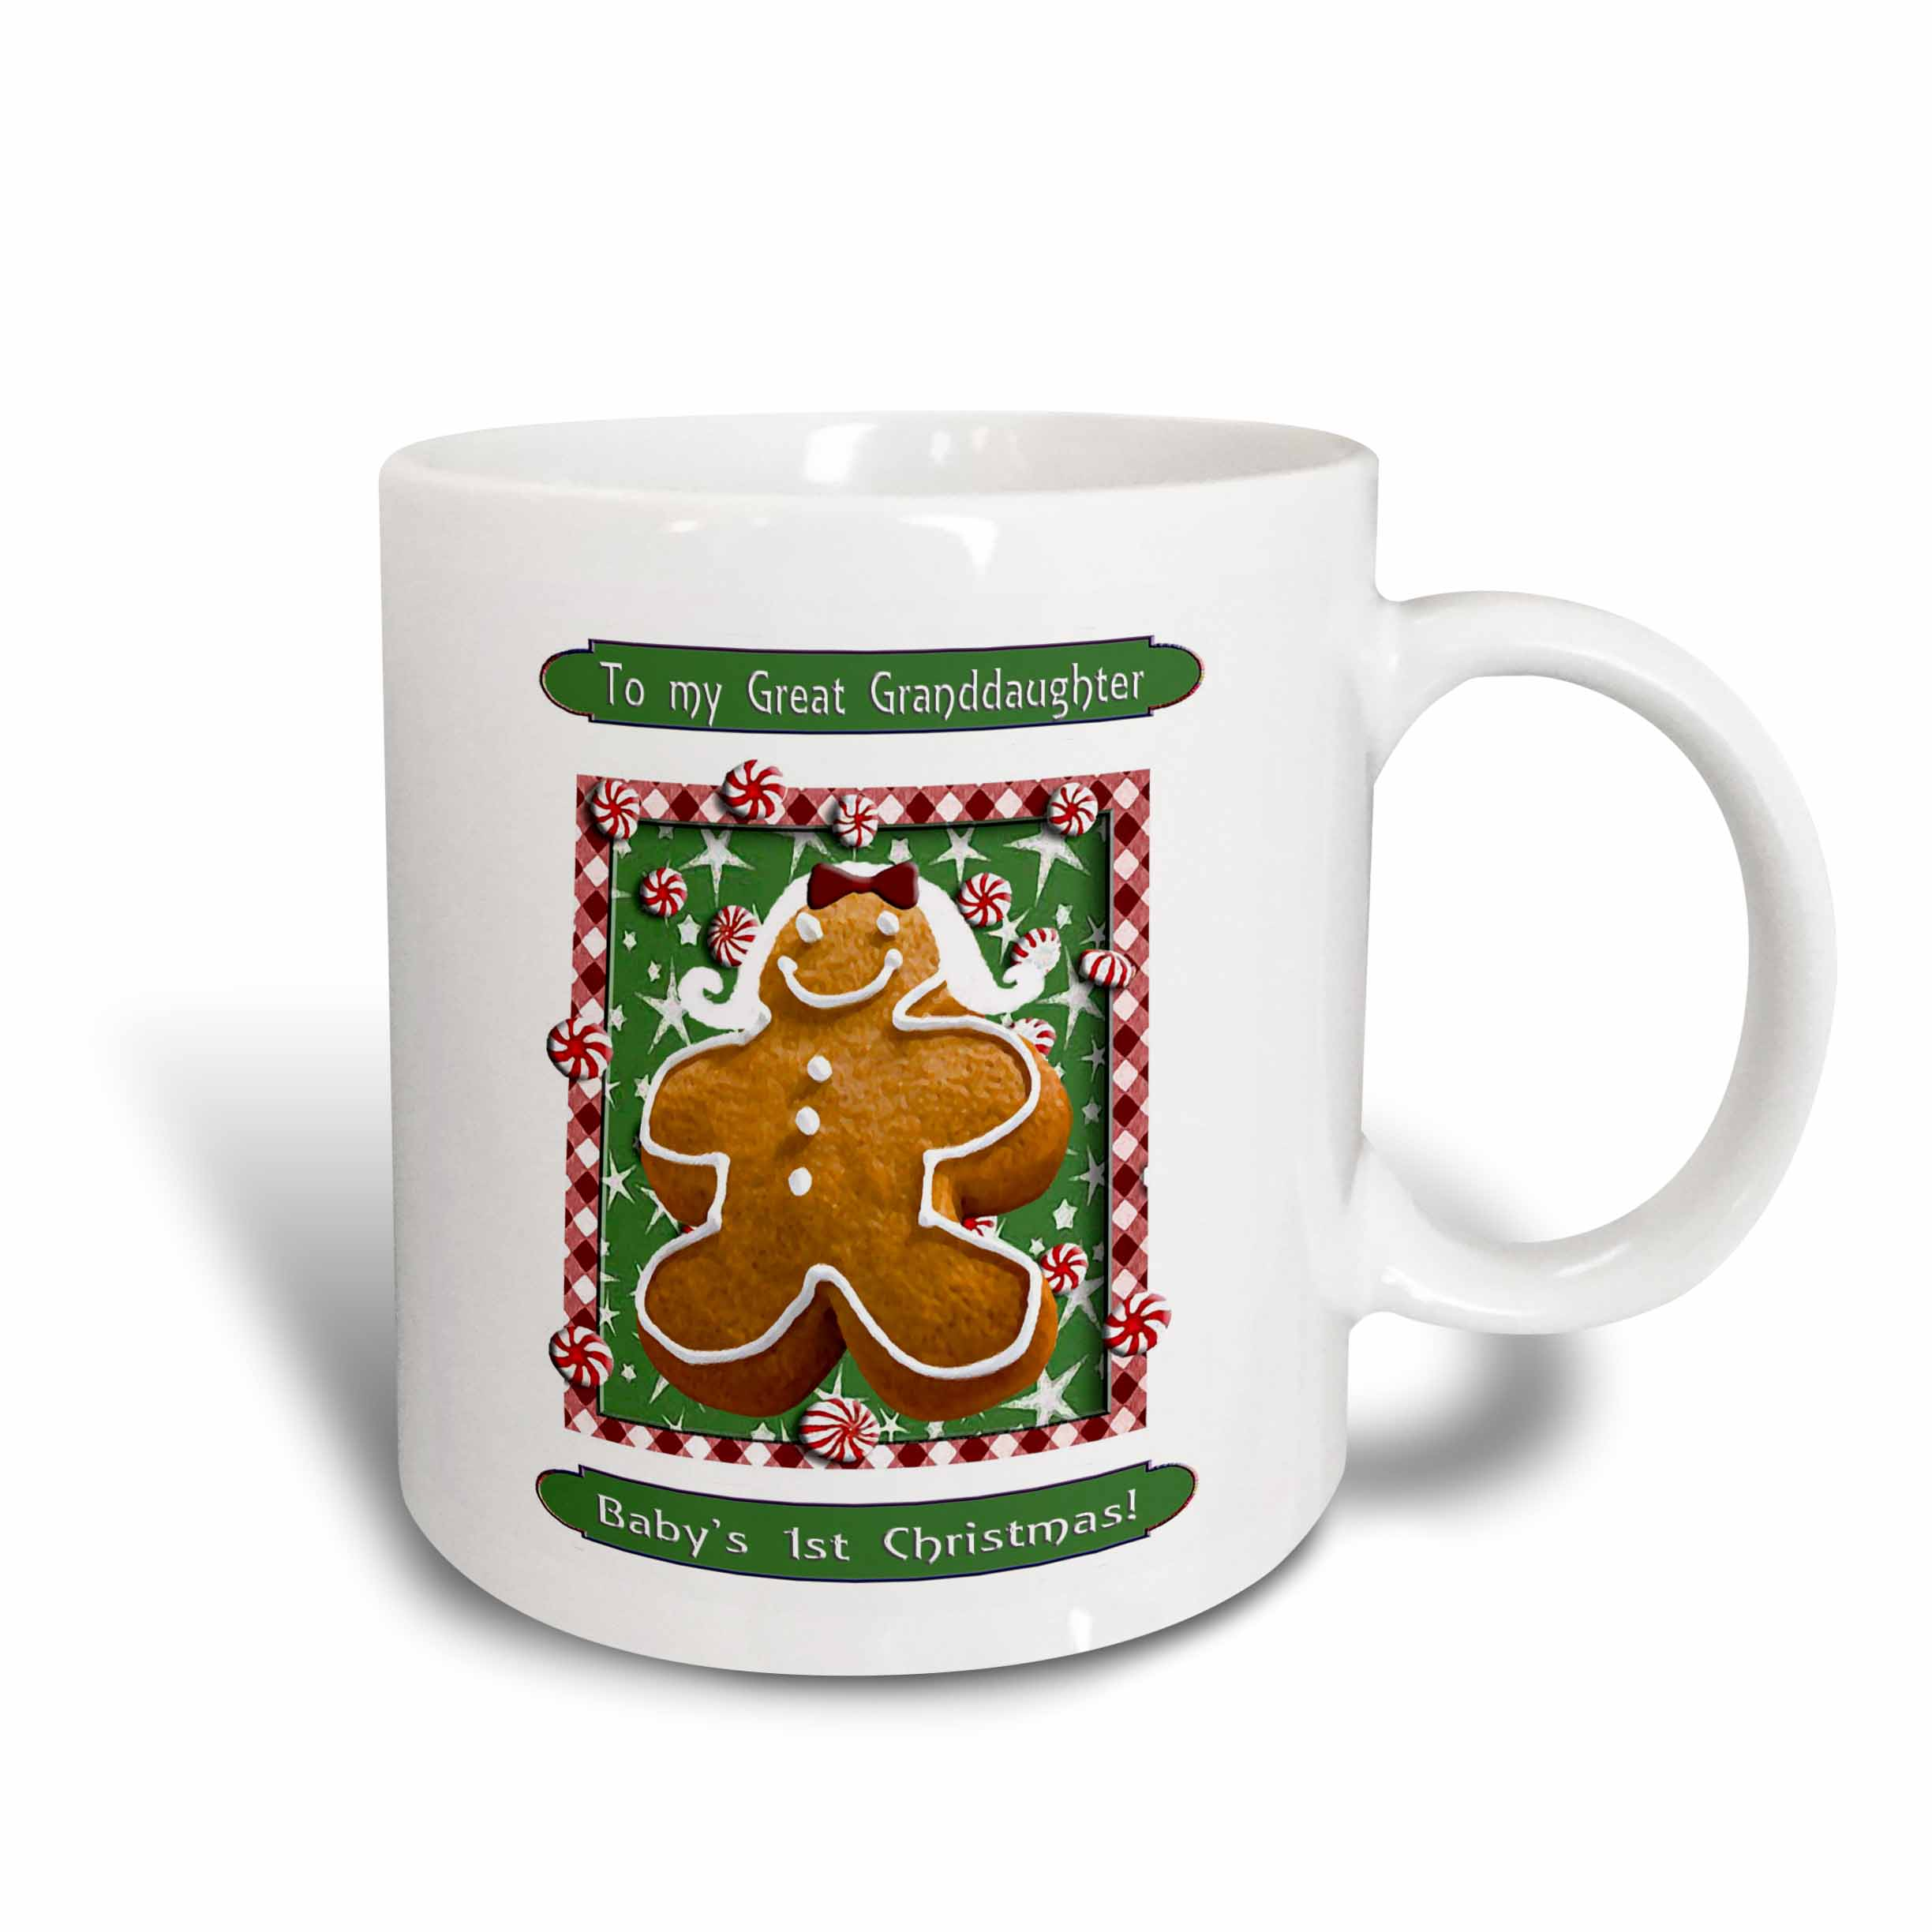 3dRose Gingerbread Girl, Babys First Christmas Great Granddaughter, Ceramic Mug, 15-ounce